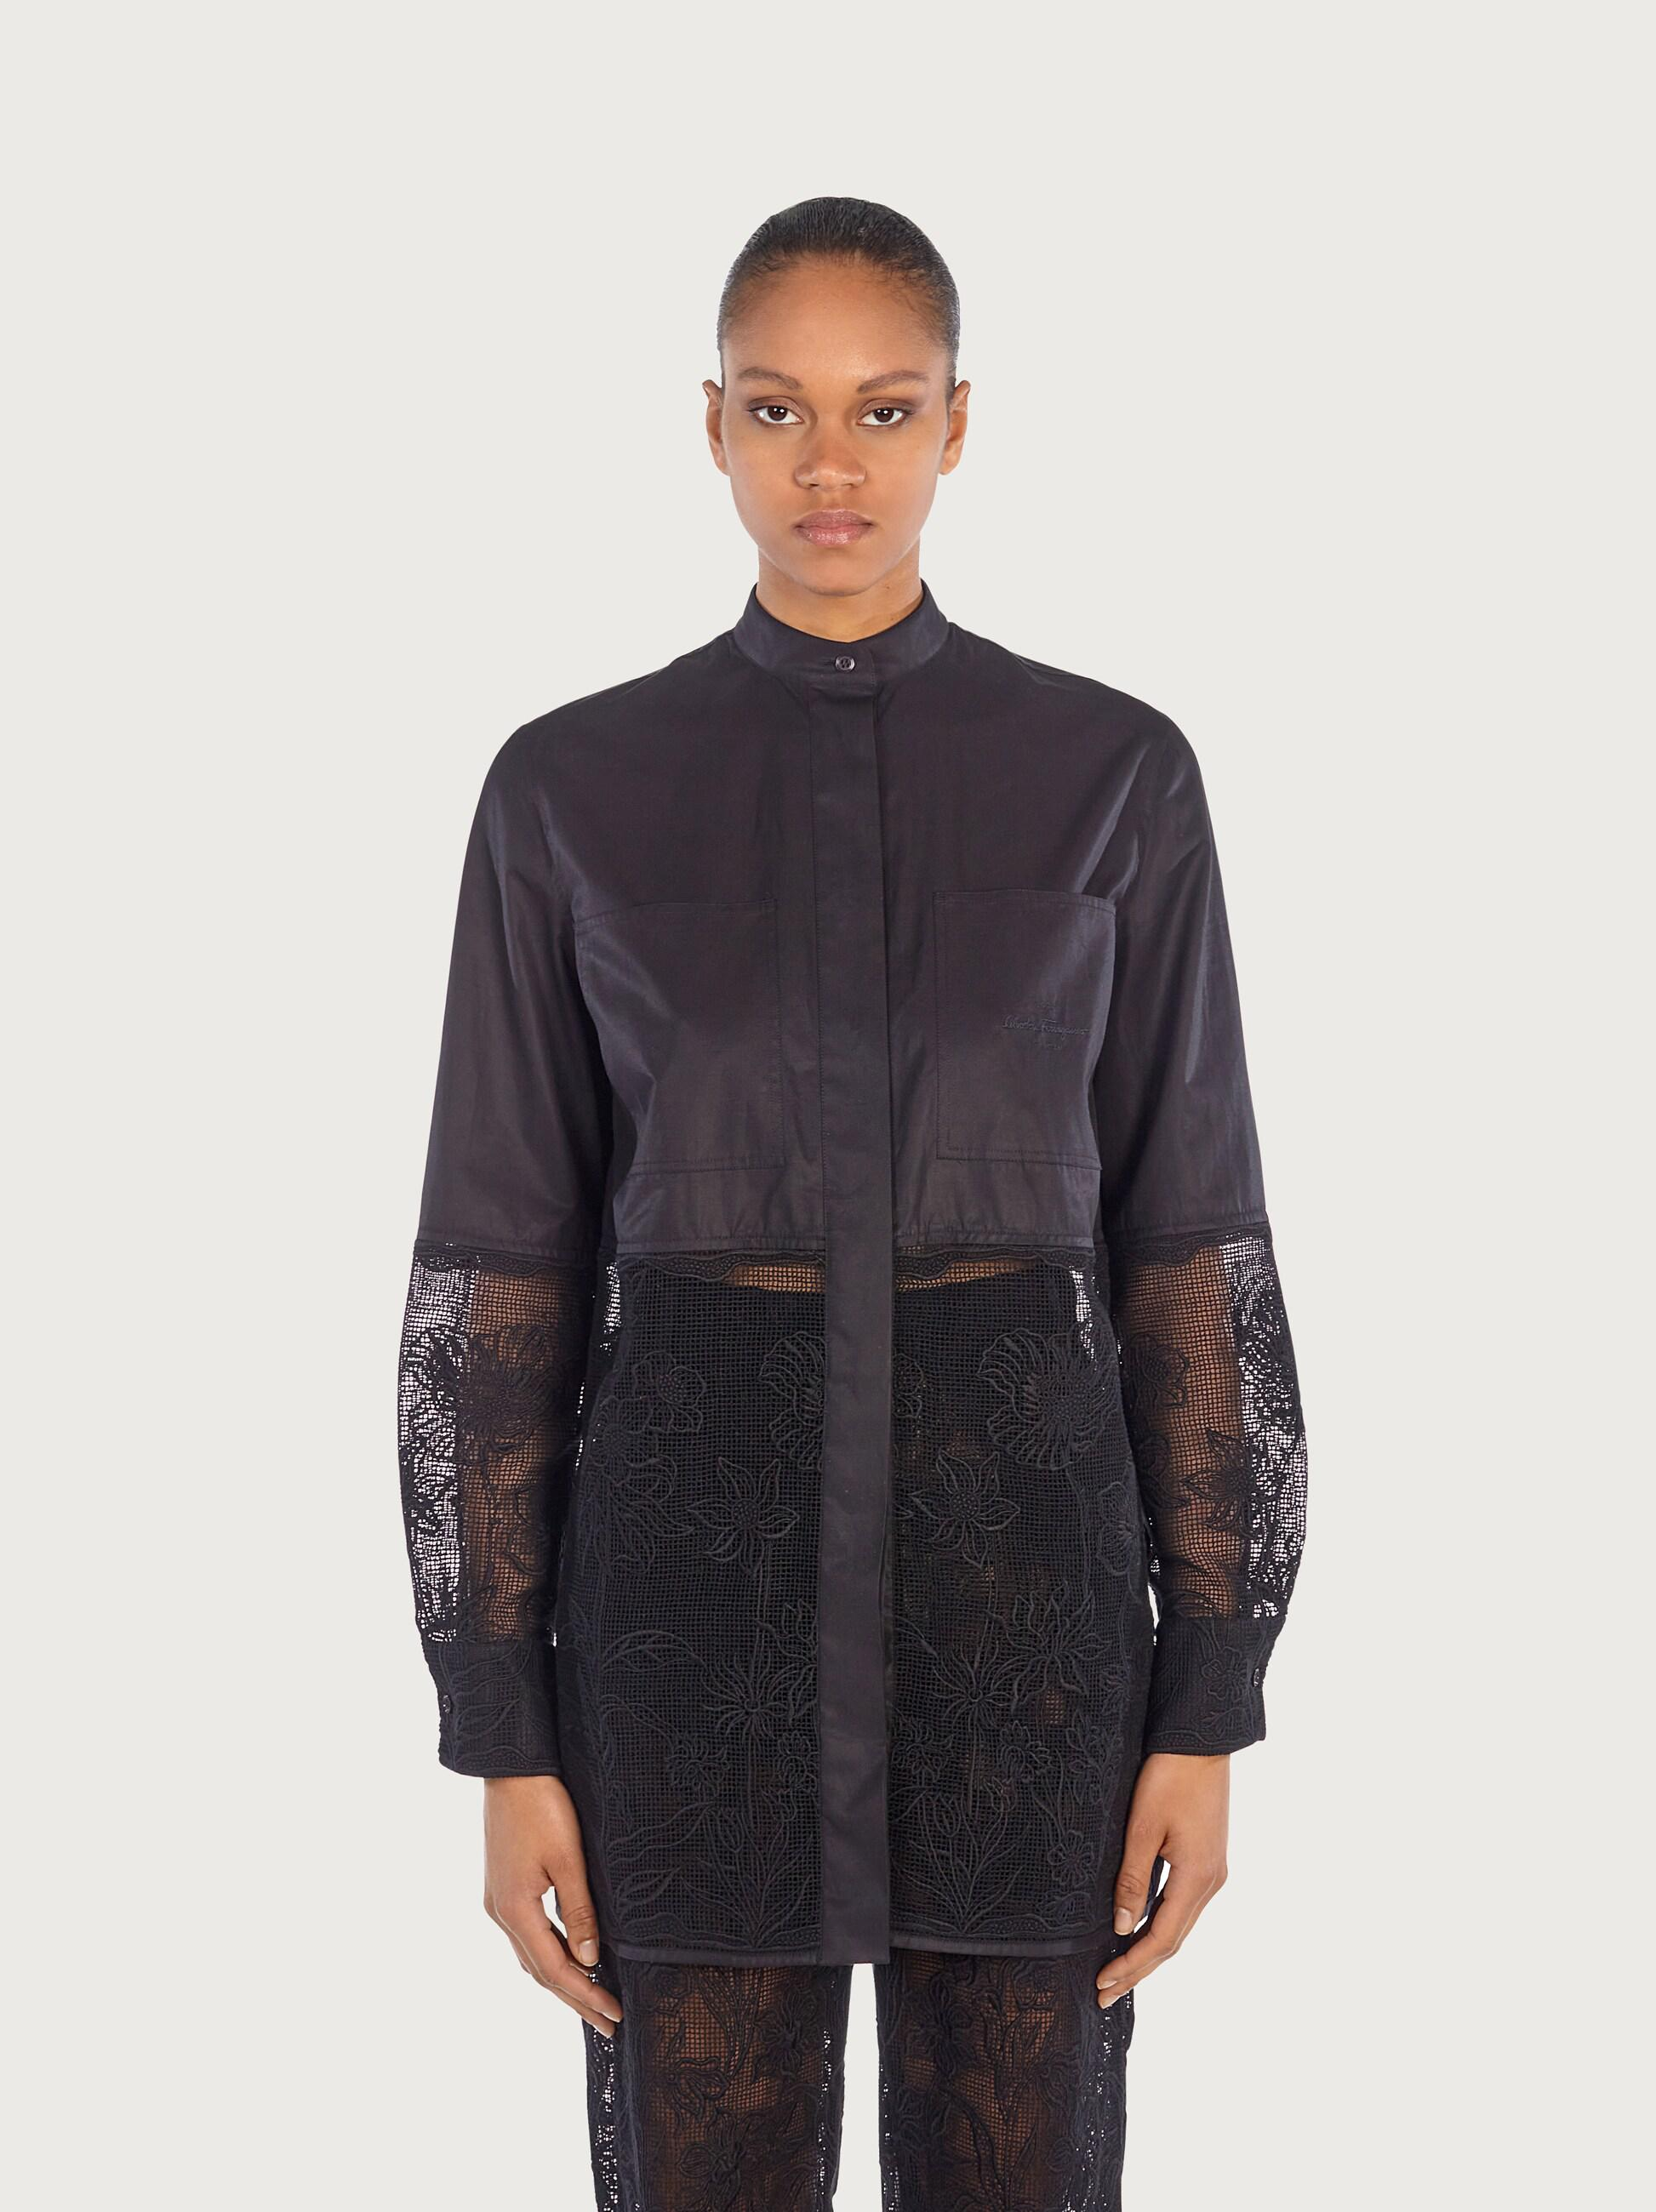 LONG SHIRT WITH CORDONETTO LACE